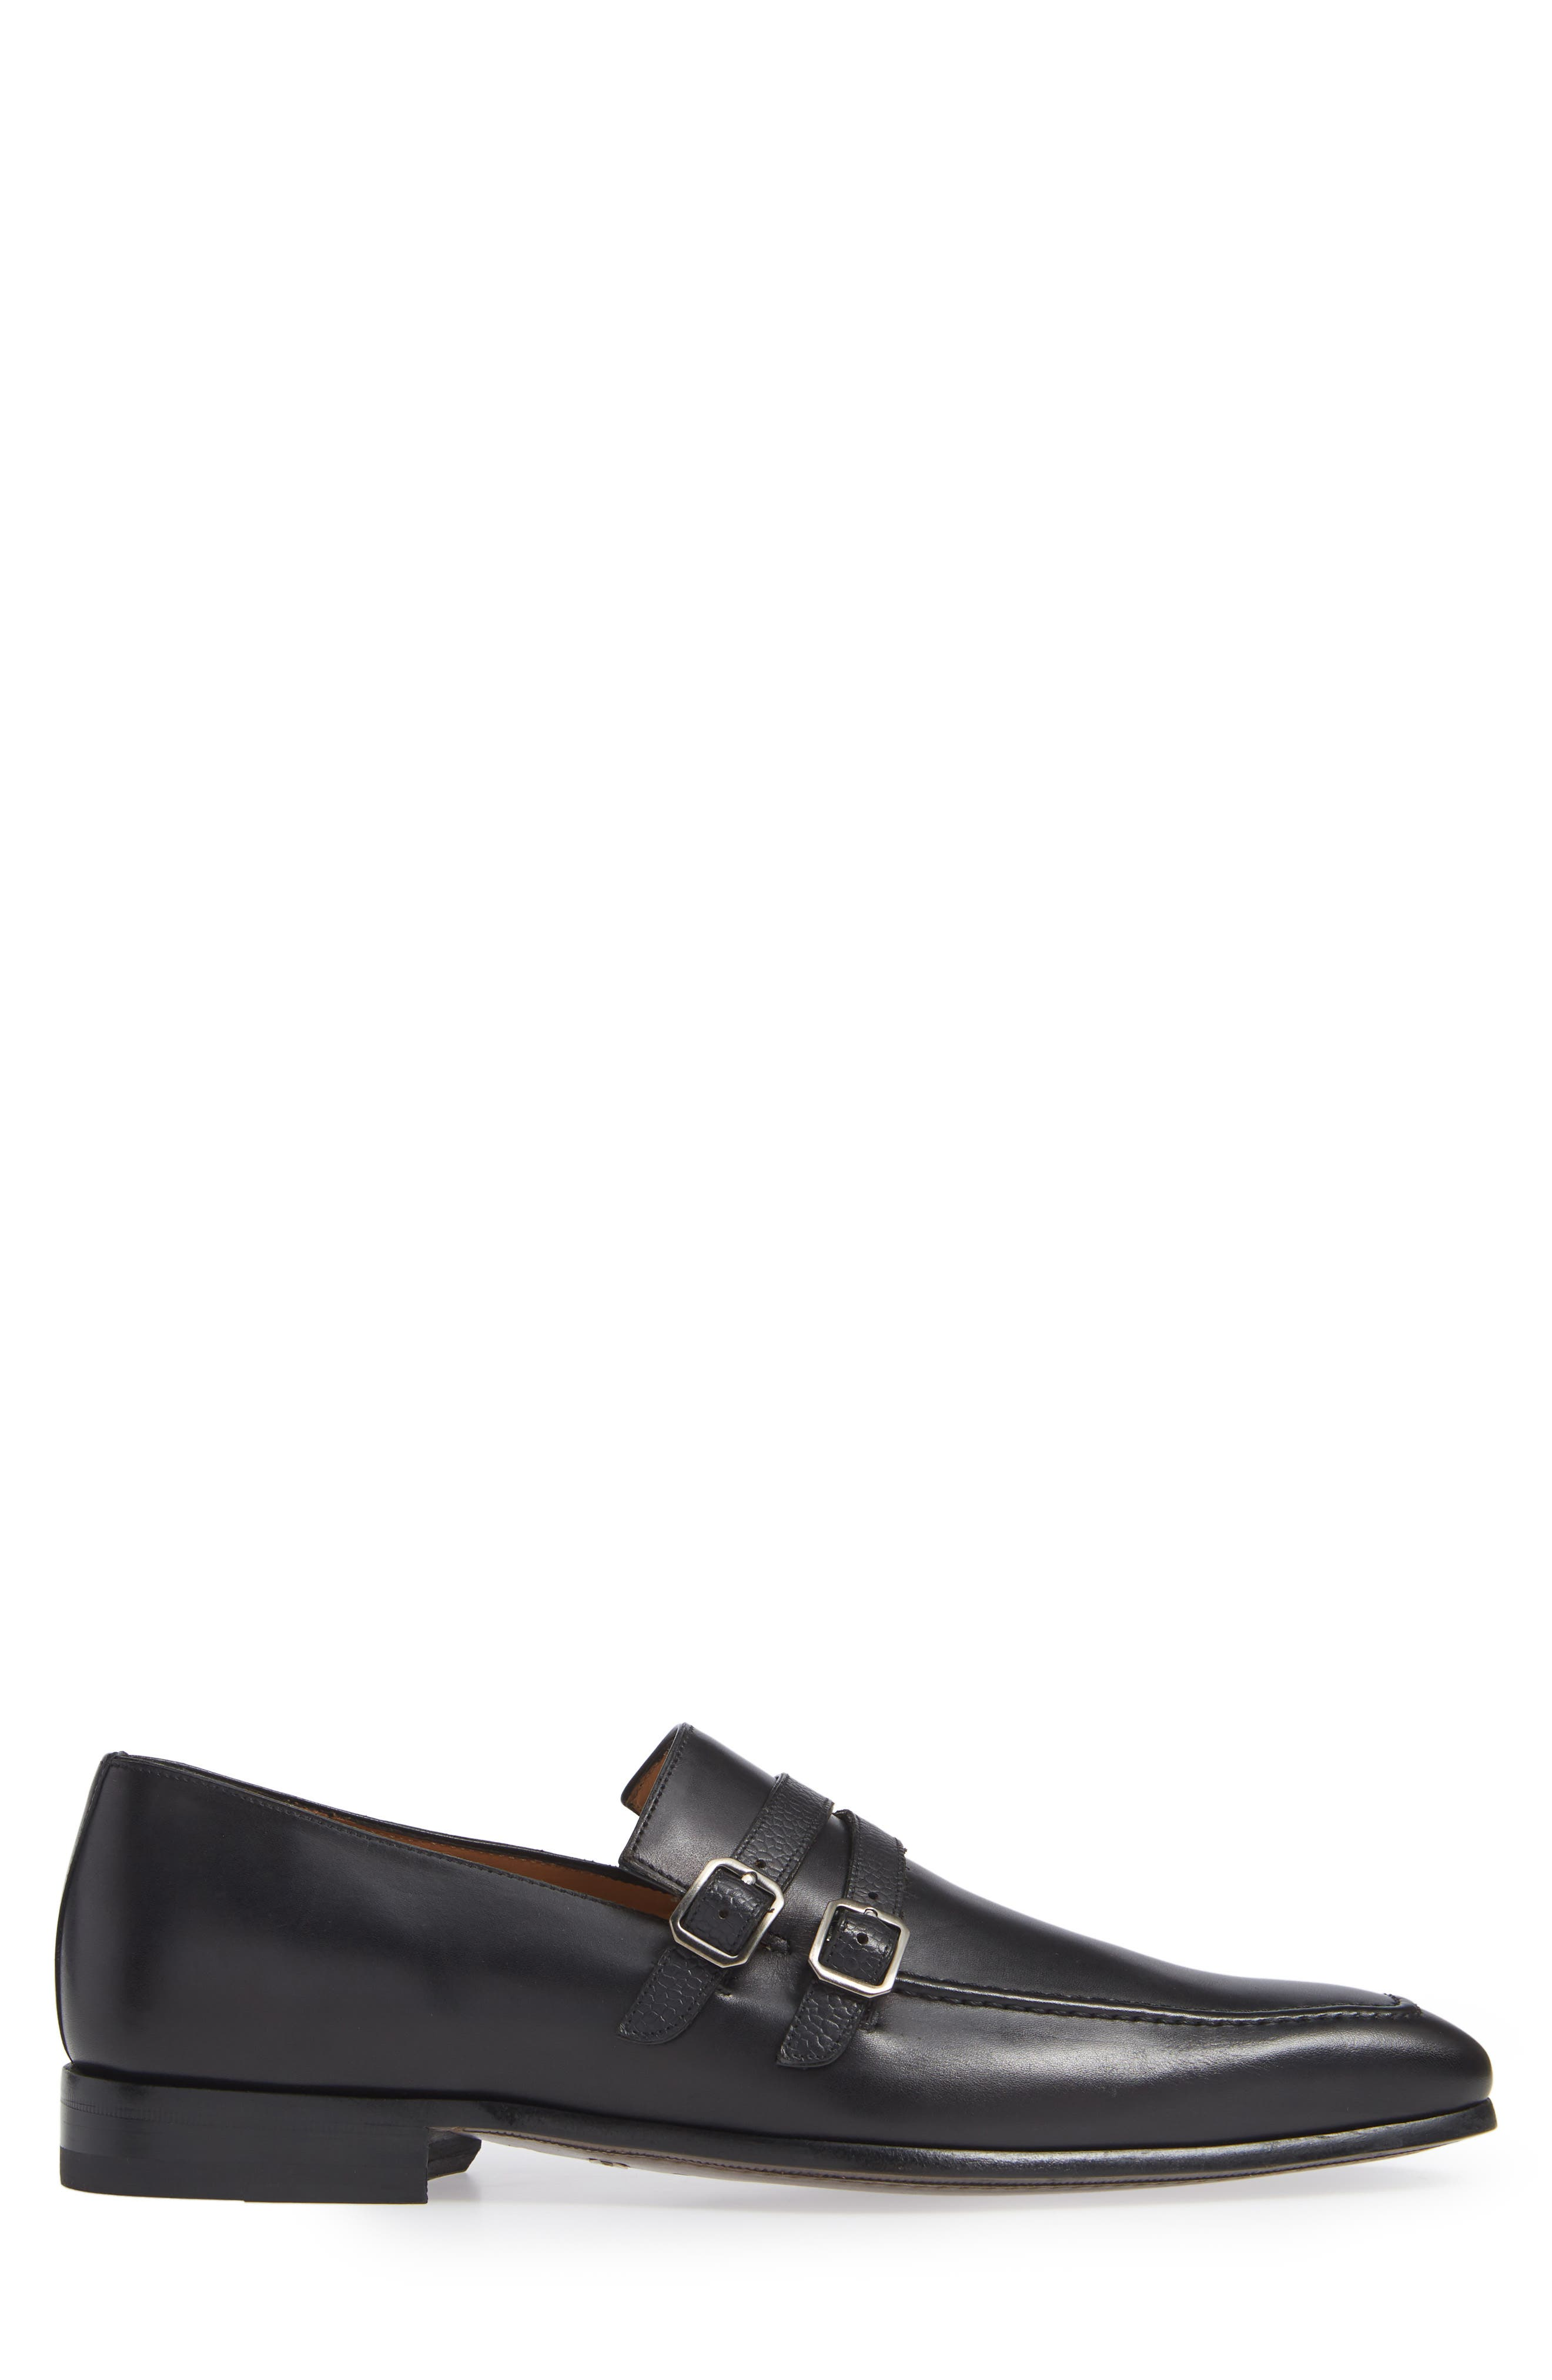 Callas Double Buckle Loafer,                             Alternate thumbnail 3, color,                             BLACK LEATHER